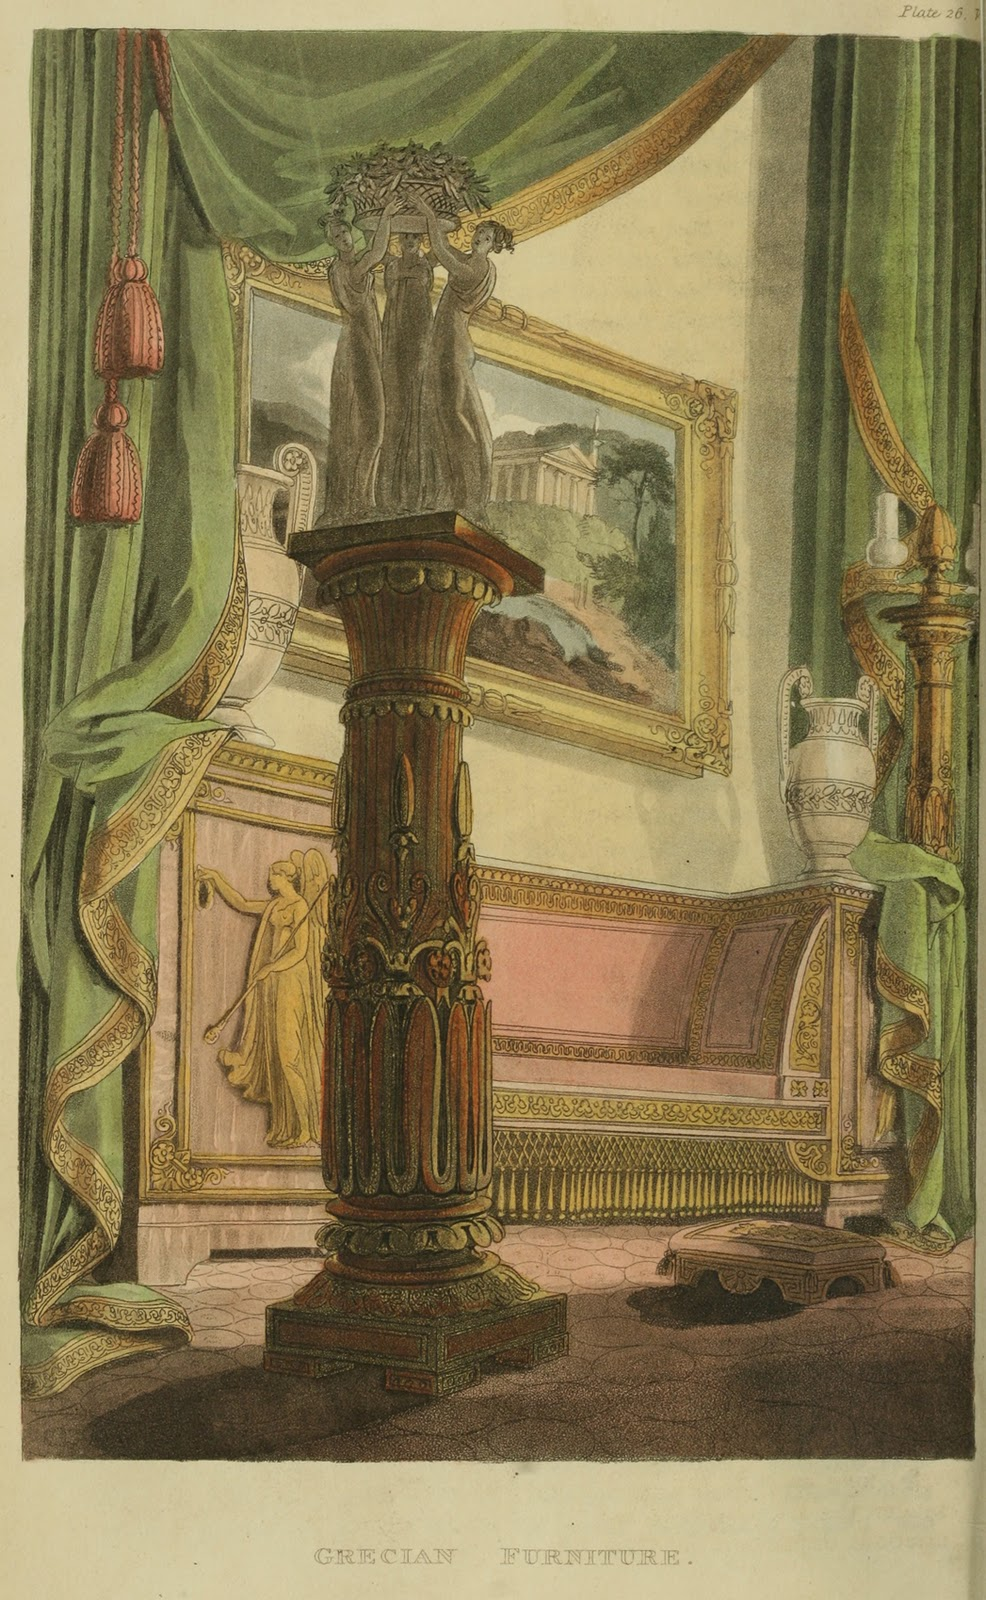 """Grecian Furniture."" Plate 26."